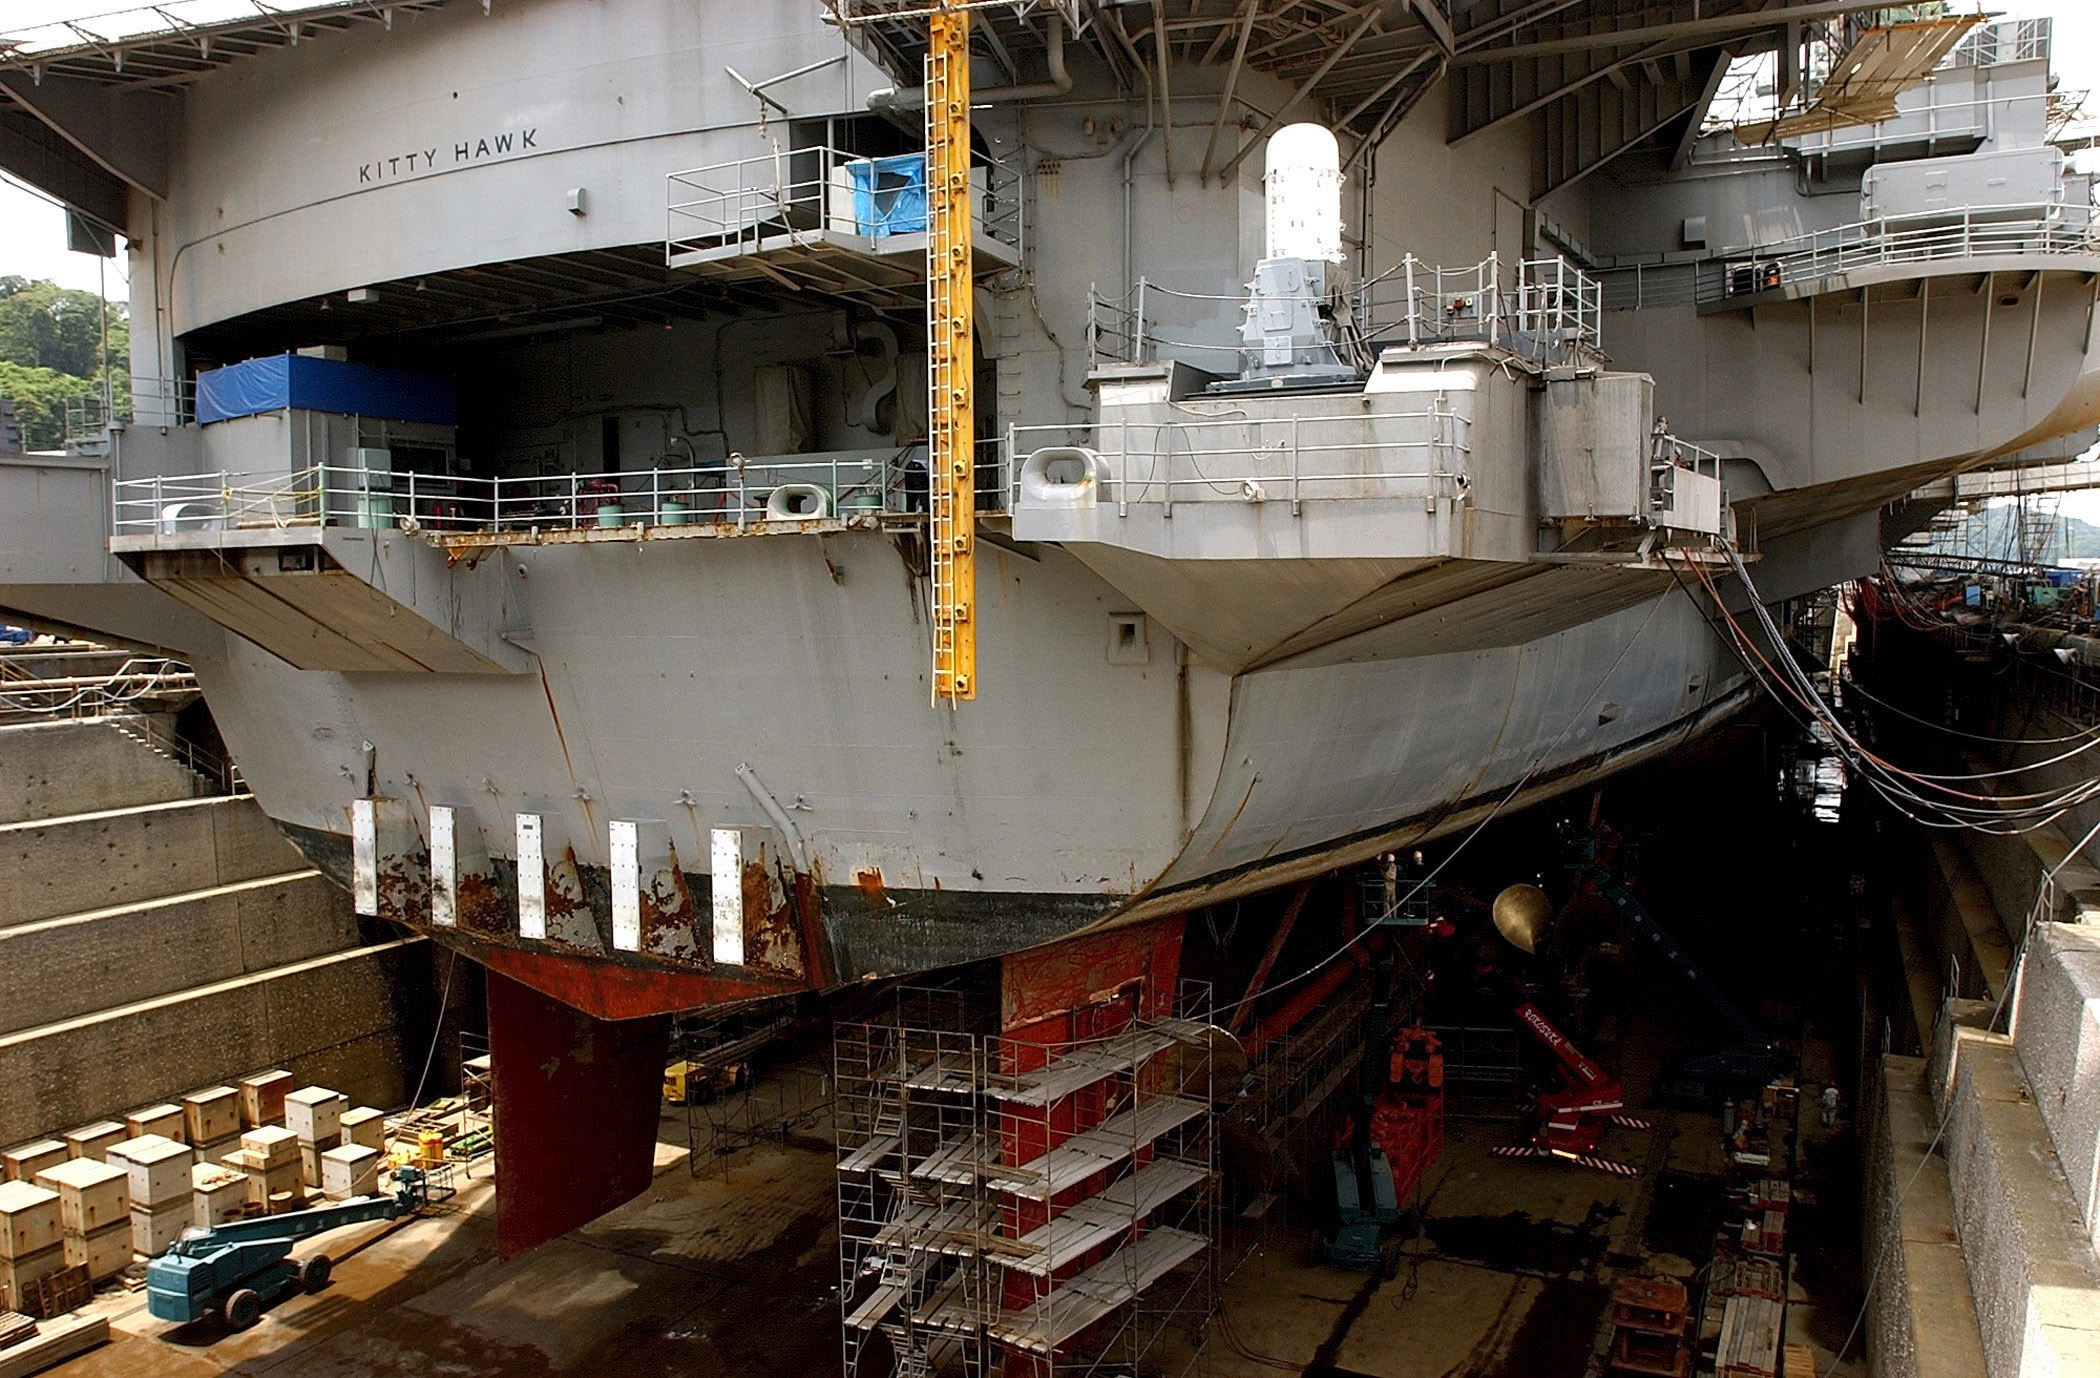 Uss Kitty Hawk (cv 63) Sits In Dry Dock Undergoing Repairs At.